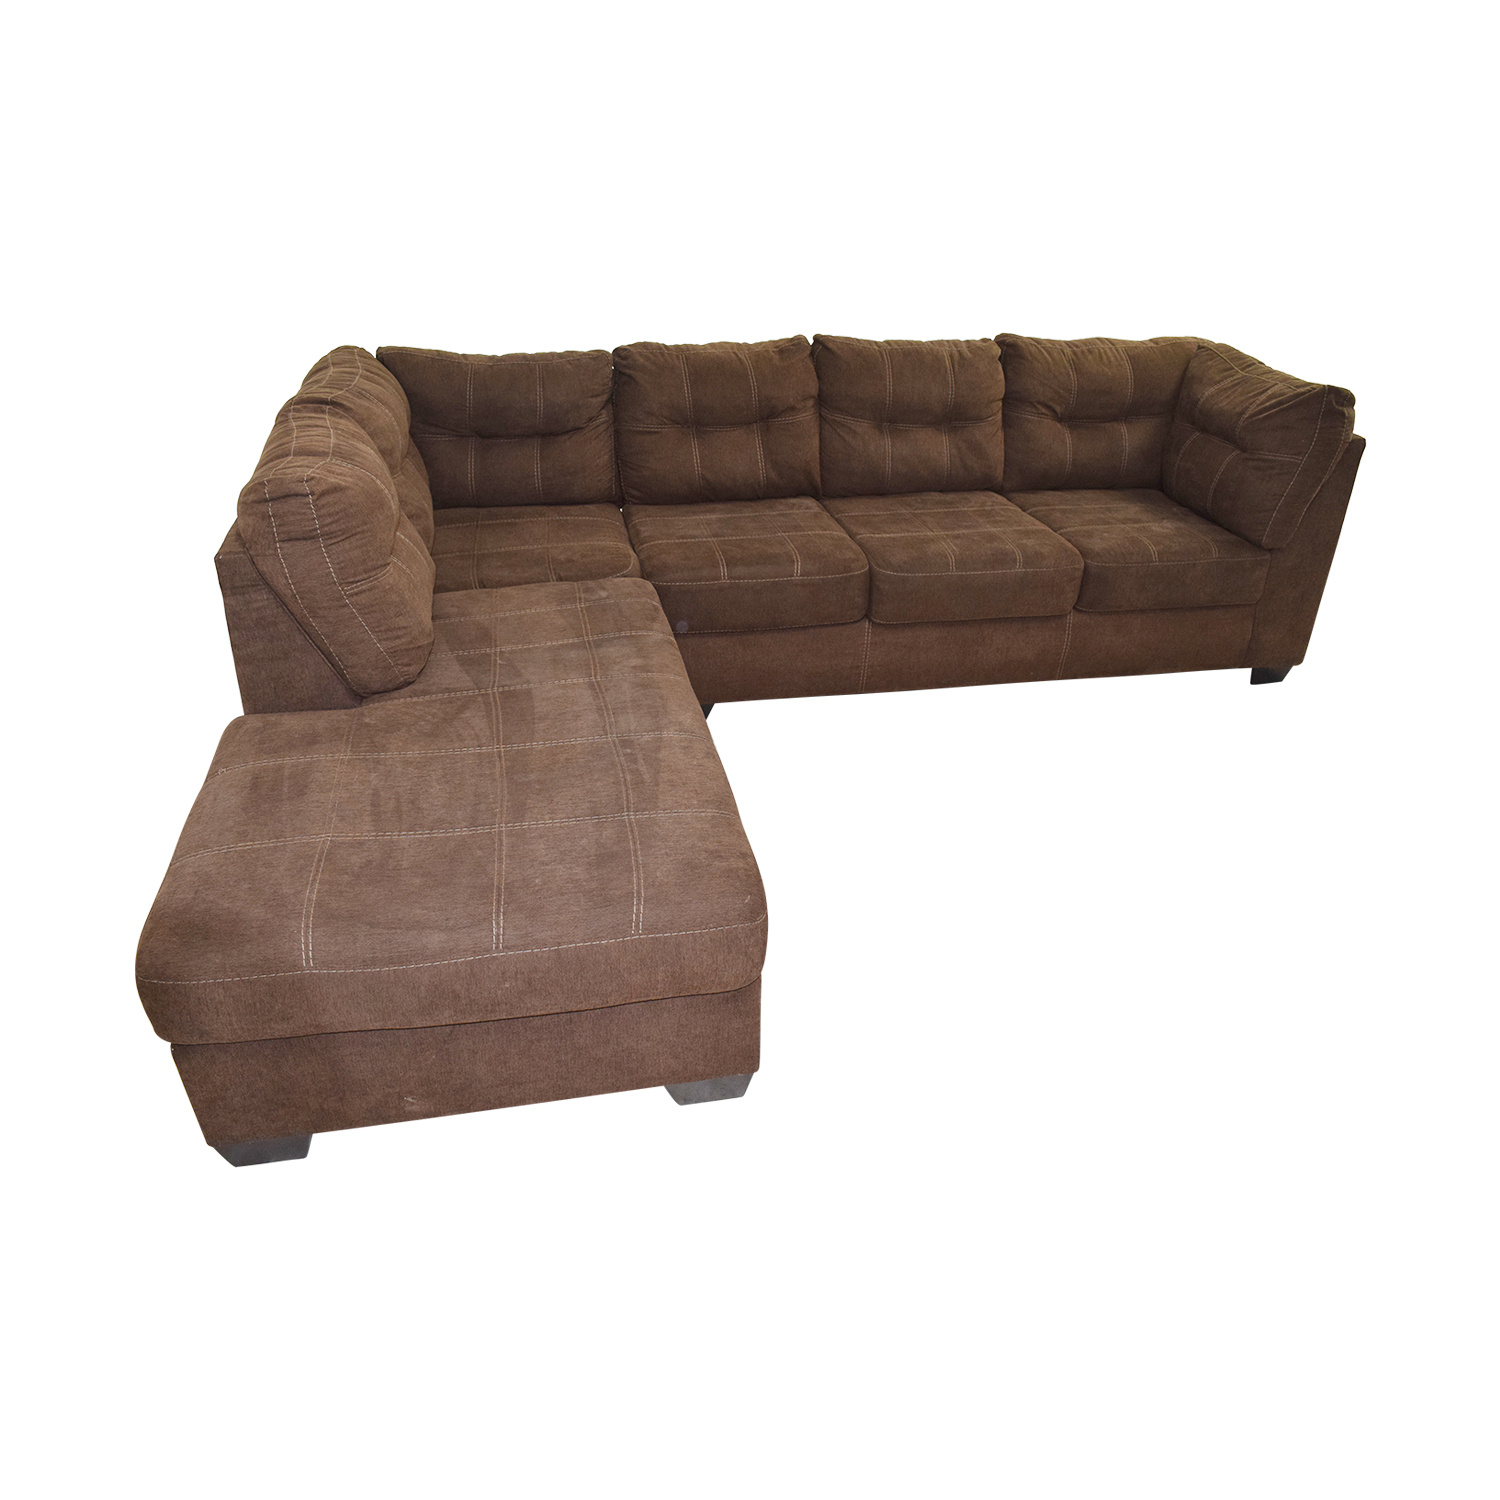 64 off brown l shaped chaise sectional sofa sofas for Brown sectionals with chaise